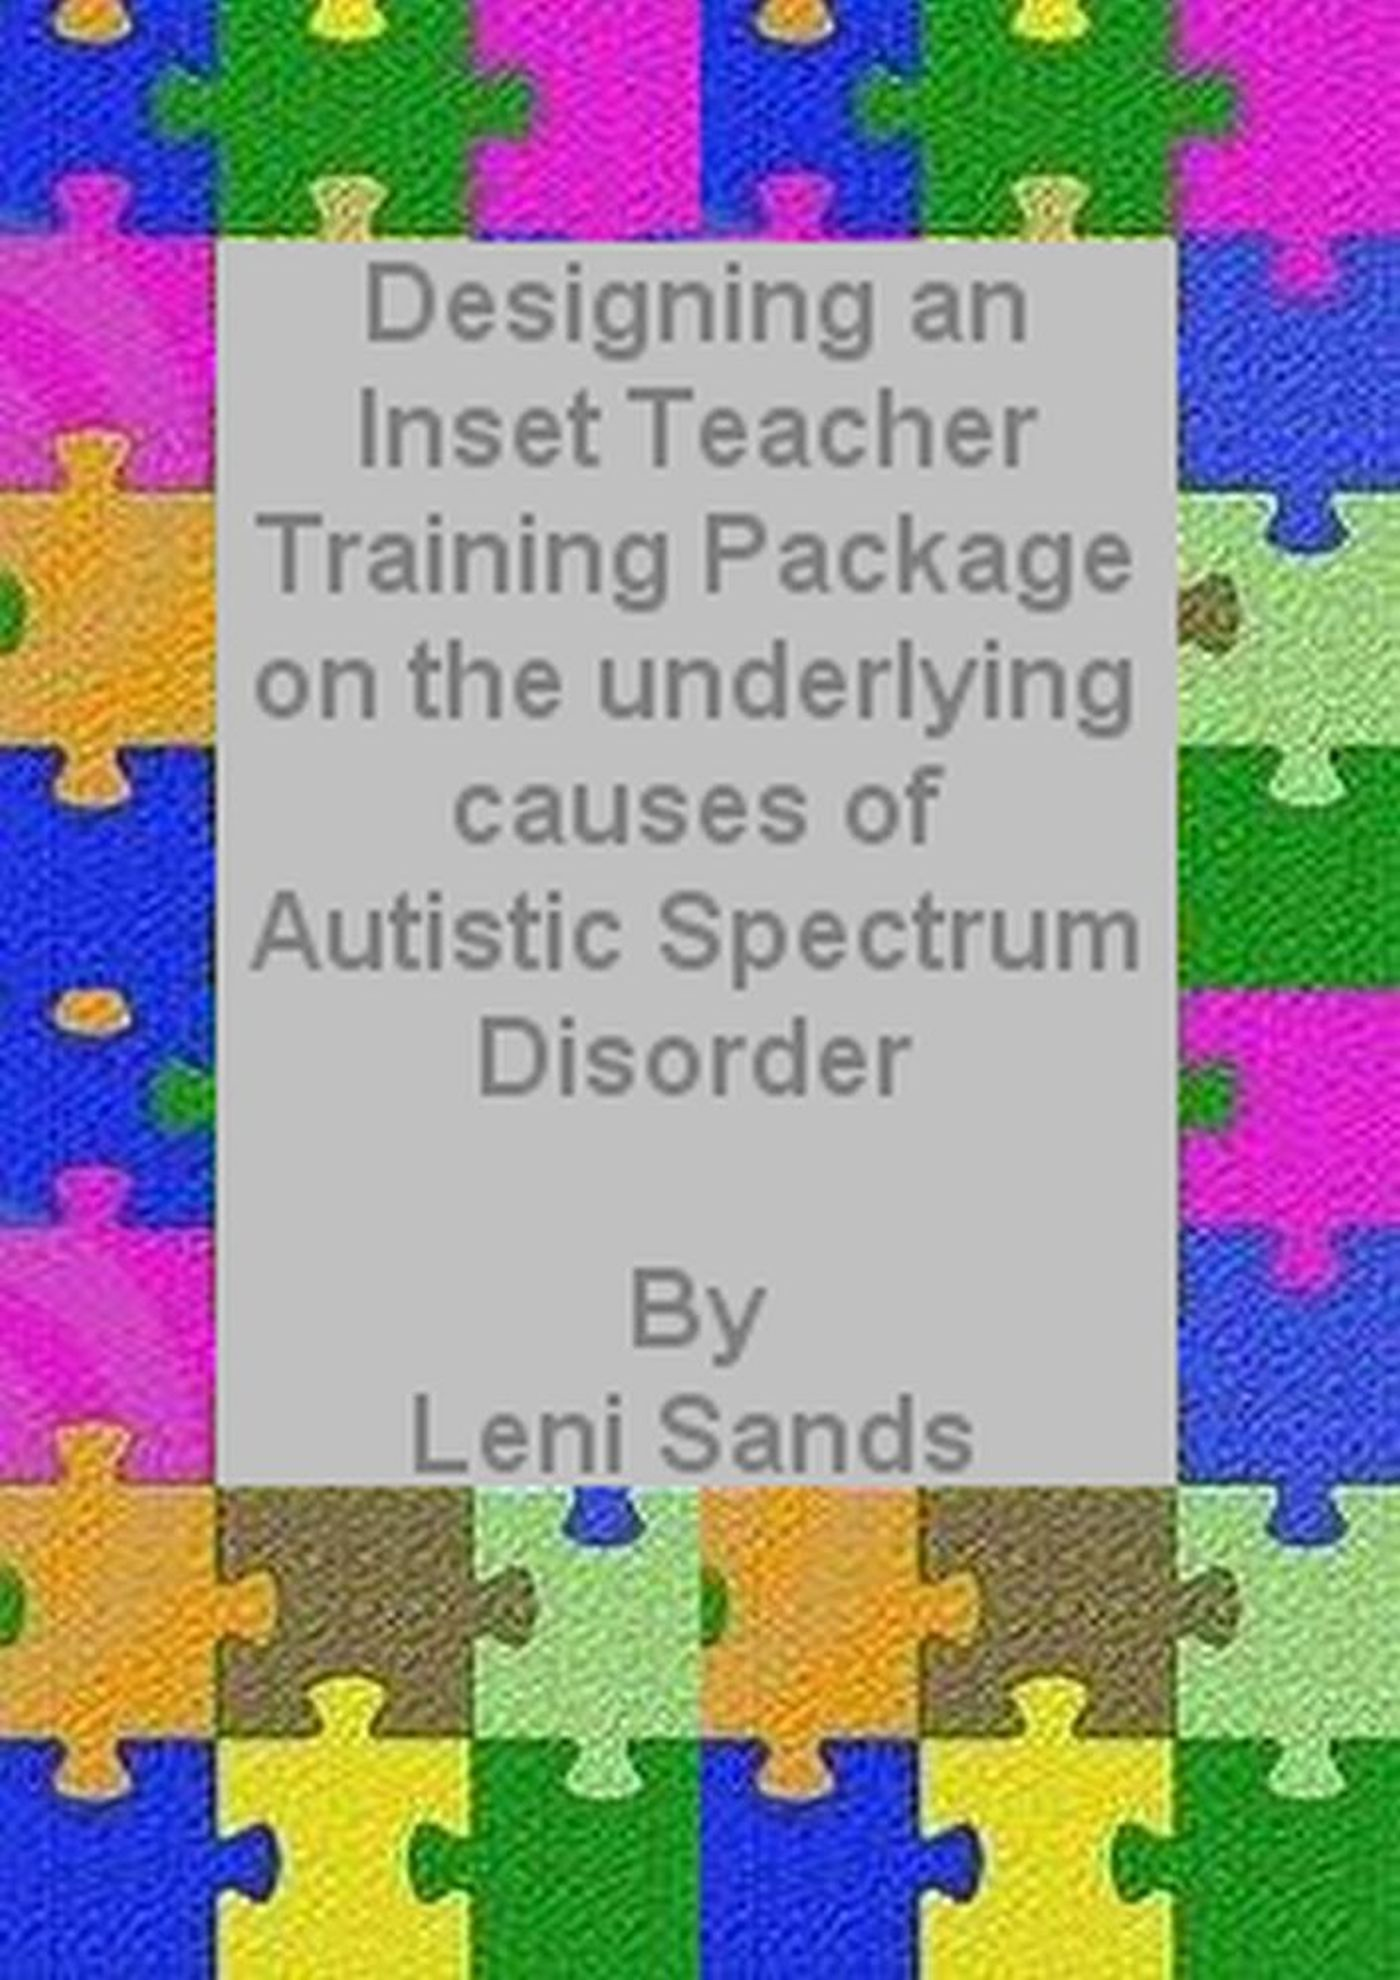 Designing an Inset Training Package on the Underlying Causes of Autistic Spectrum Disorder (ASD)